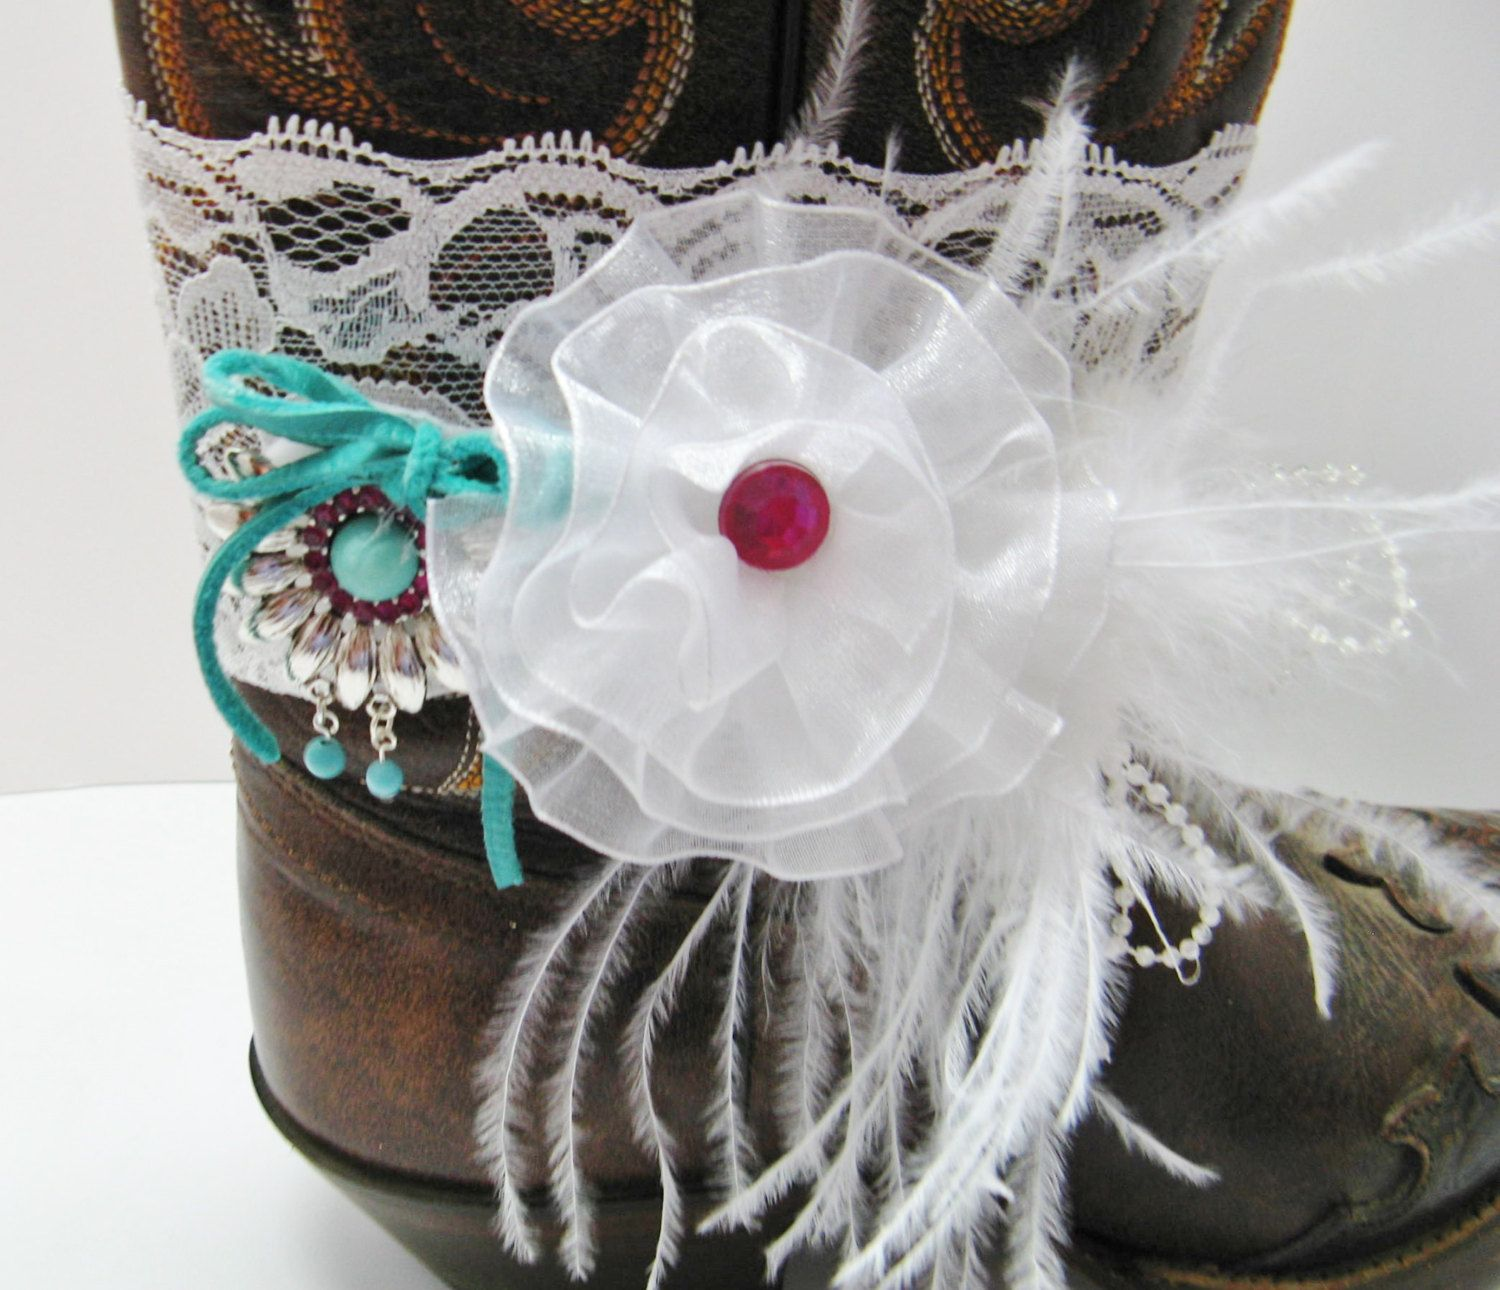 White Chiffon Floral and Beads Bridal Boot Bracelet, Country Wedding Boot Bling, Turquoise and Red Bead Country Bling by Louisefashionjewelry on Etsy